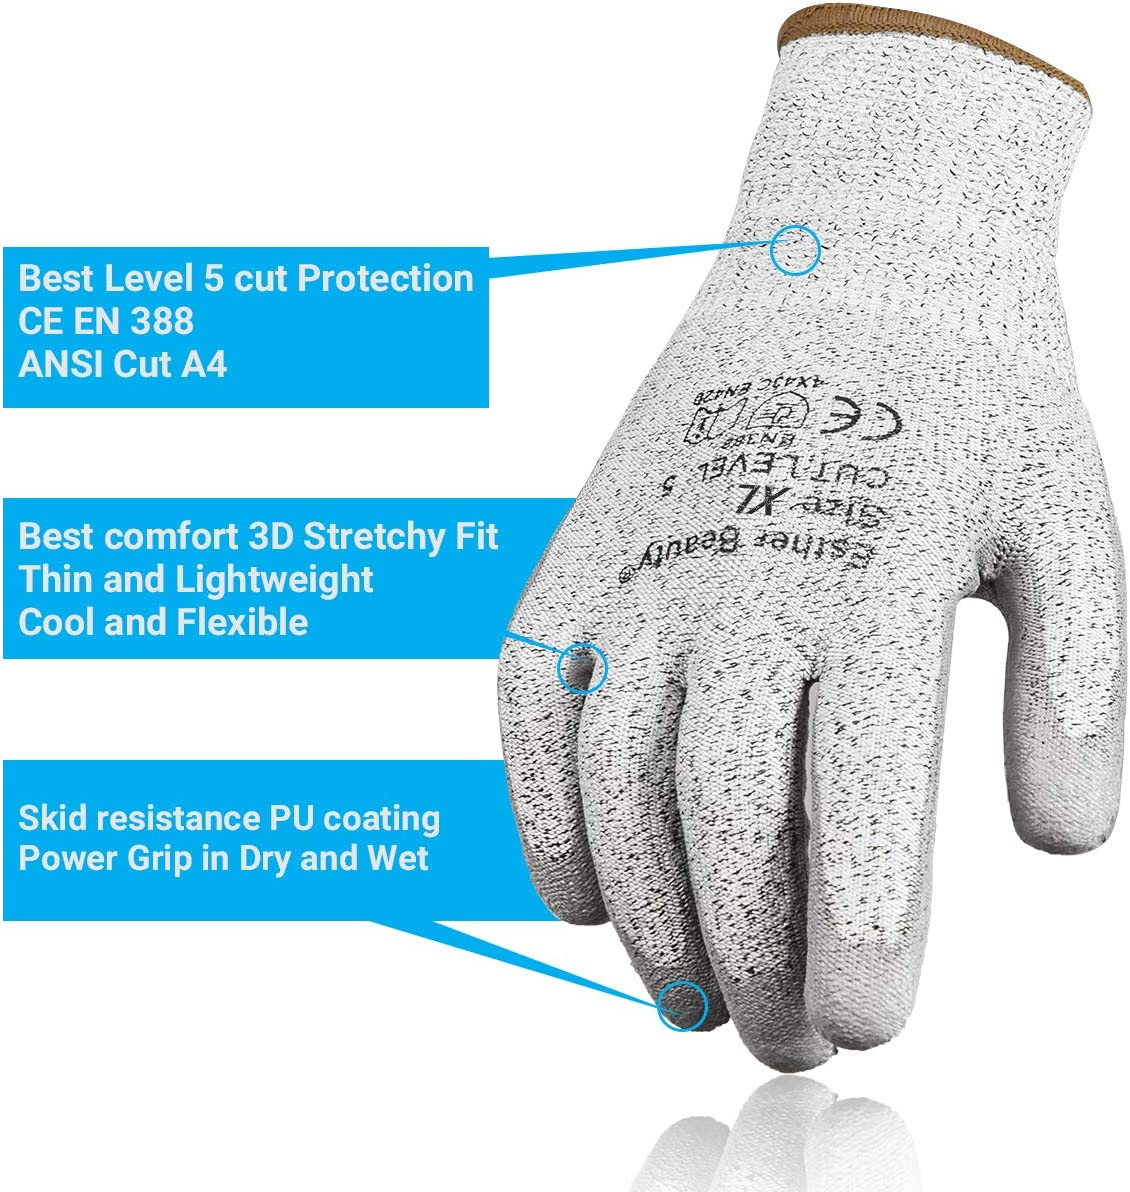 Kitchen Cutting Multifunctional Men Working Gloves for Garden Fishing Extra Large Home Improvement Esther Beauty 3 Pairs Women Gardening Gloves with Cut Resistant Level 5 Protection